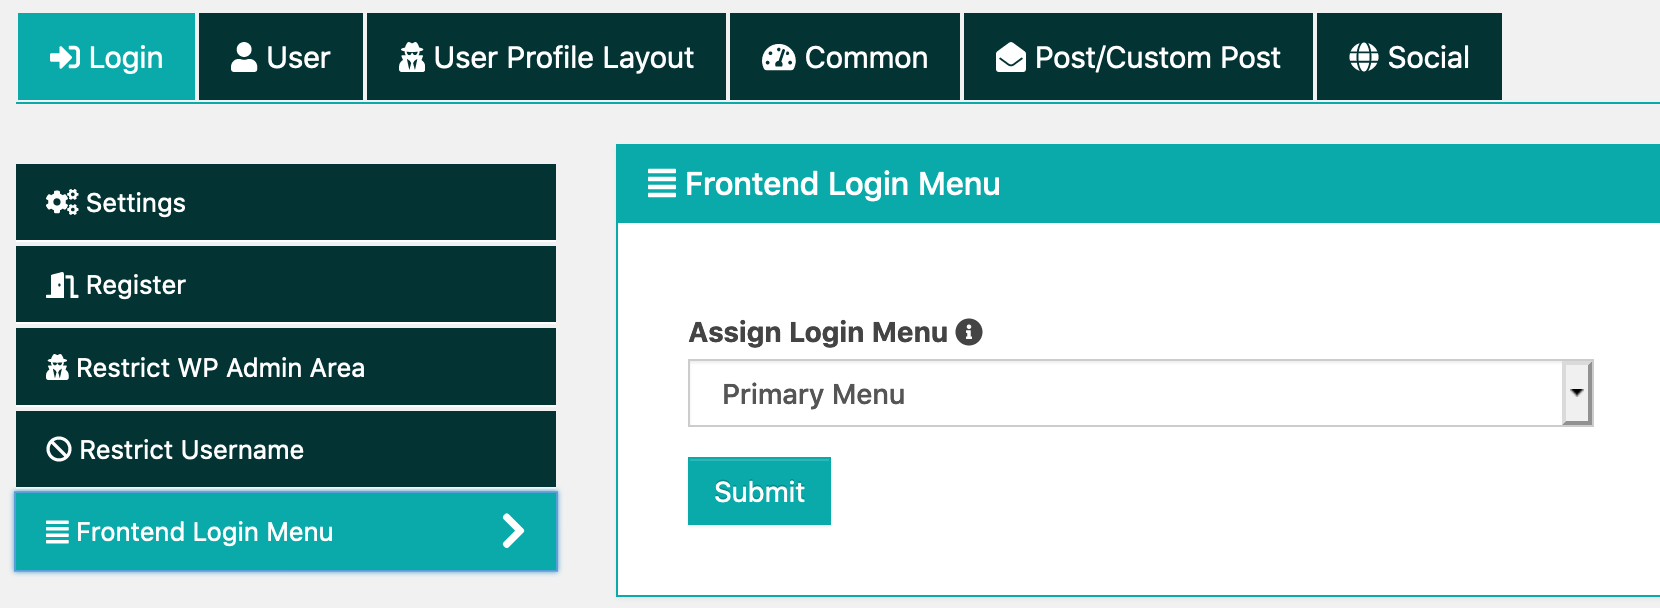 User Login Or Dashboard and Logout Frontend Dashboard